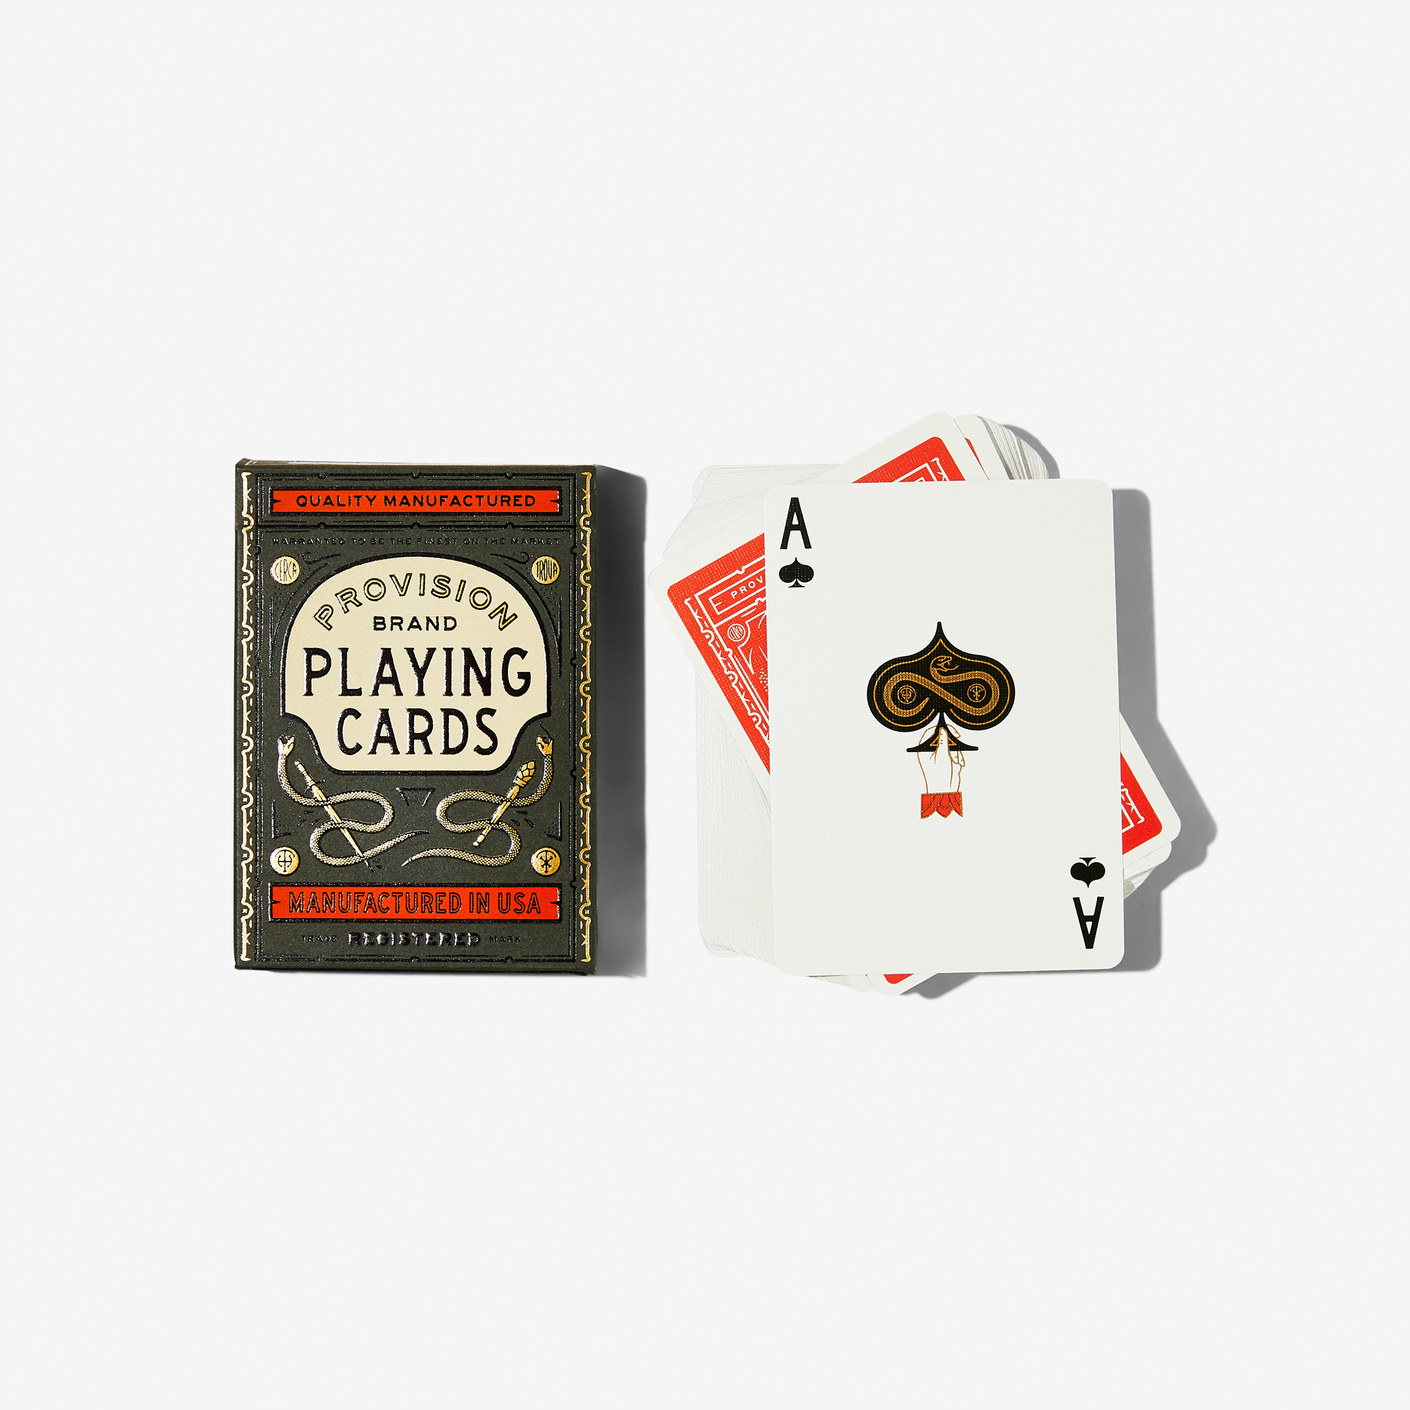 provision brand playing cards with snakes on the pack and the ace of spades showing with a hand holding up a spade with a snake on it